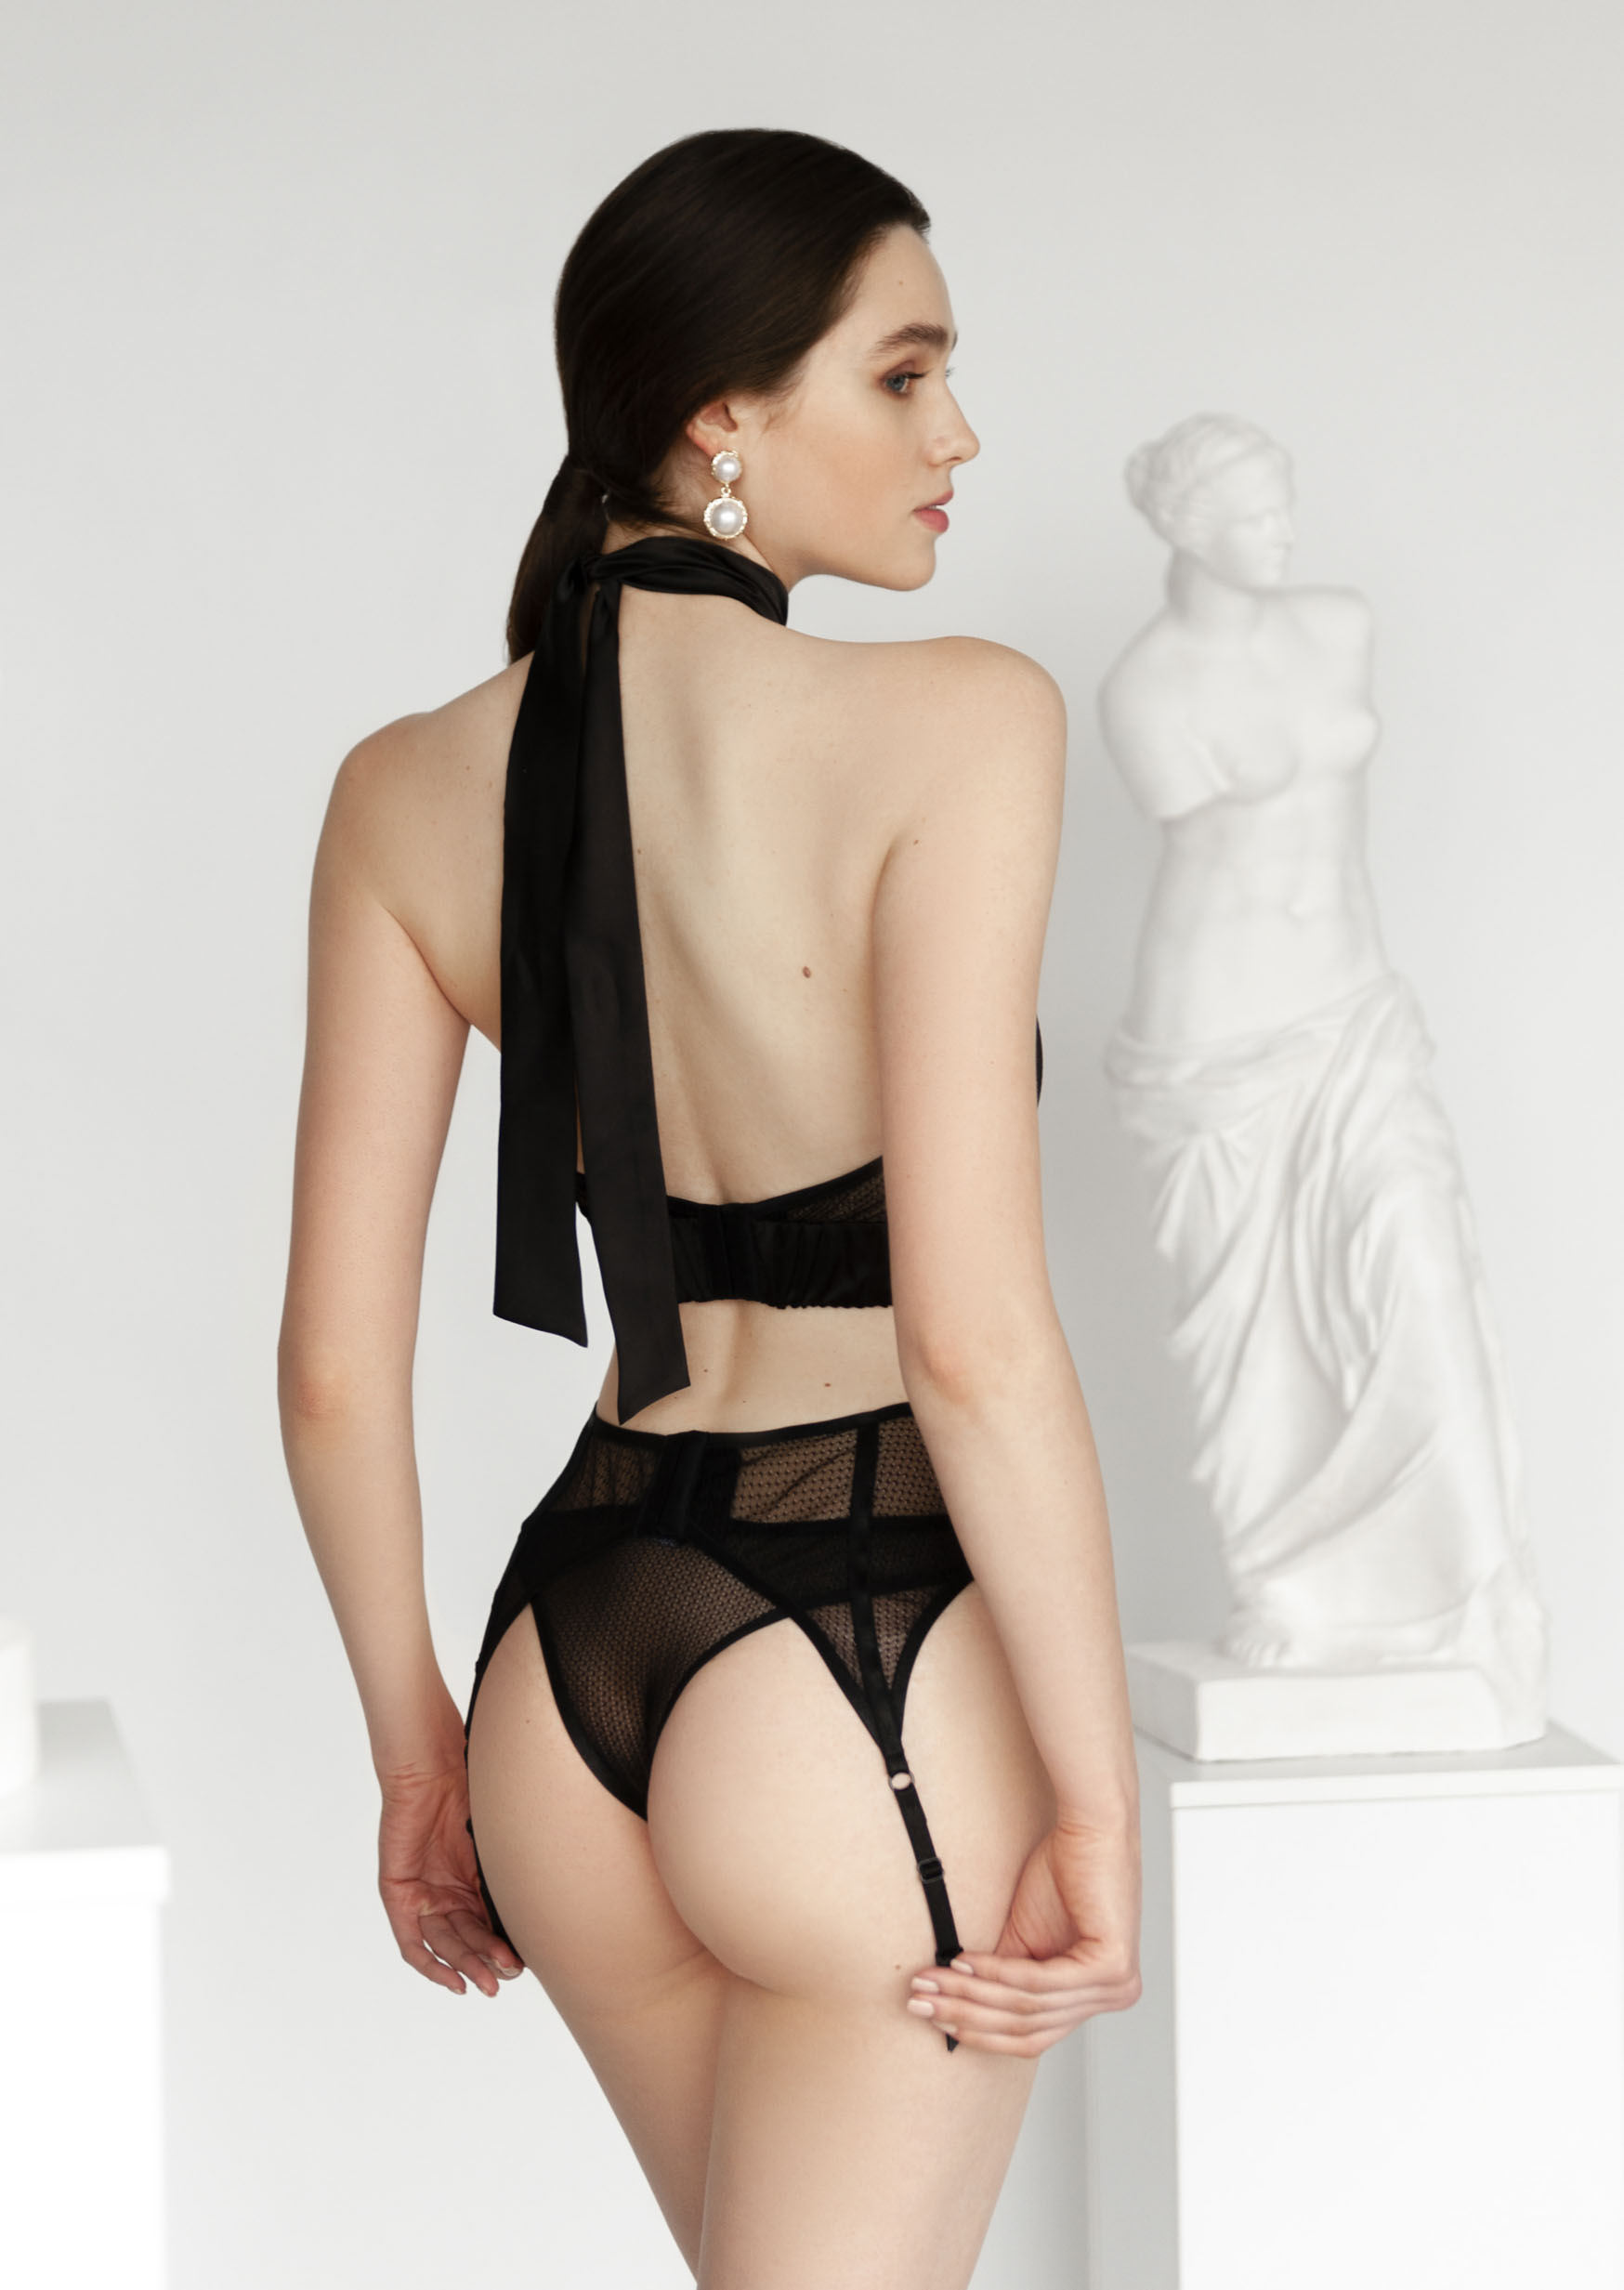 Mystery lingerie set sexy black strappy lingerie with garter belt